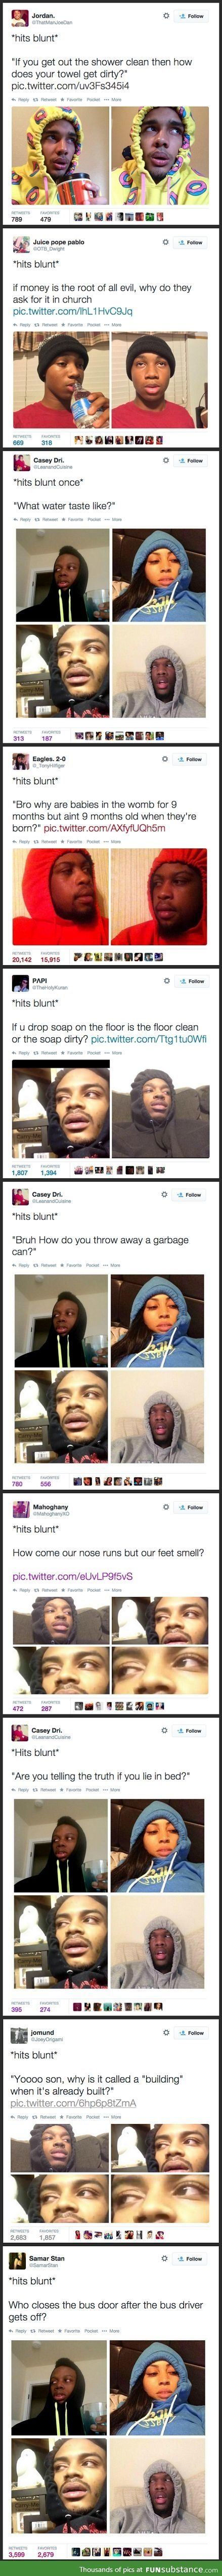 Things people say when they hit a blunt | Random | Funny, Tumblr